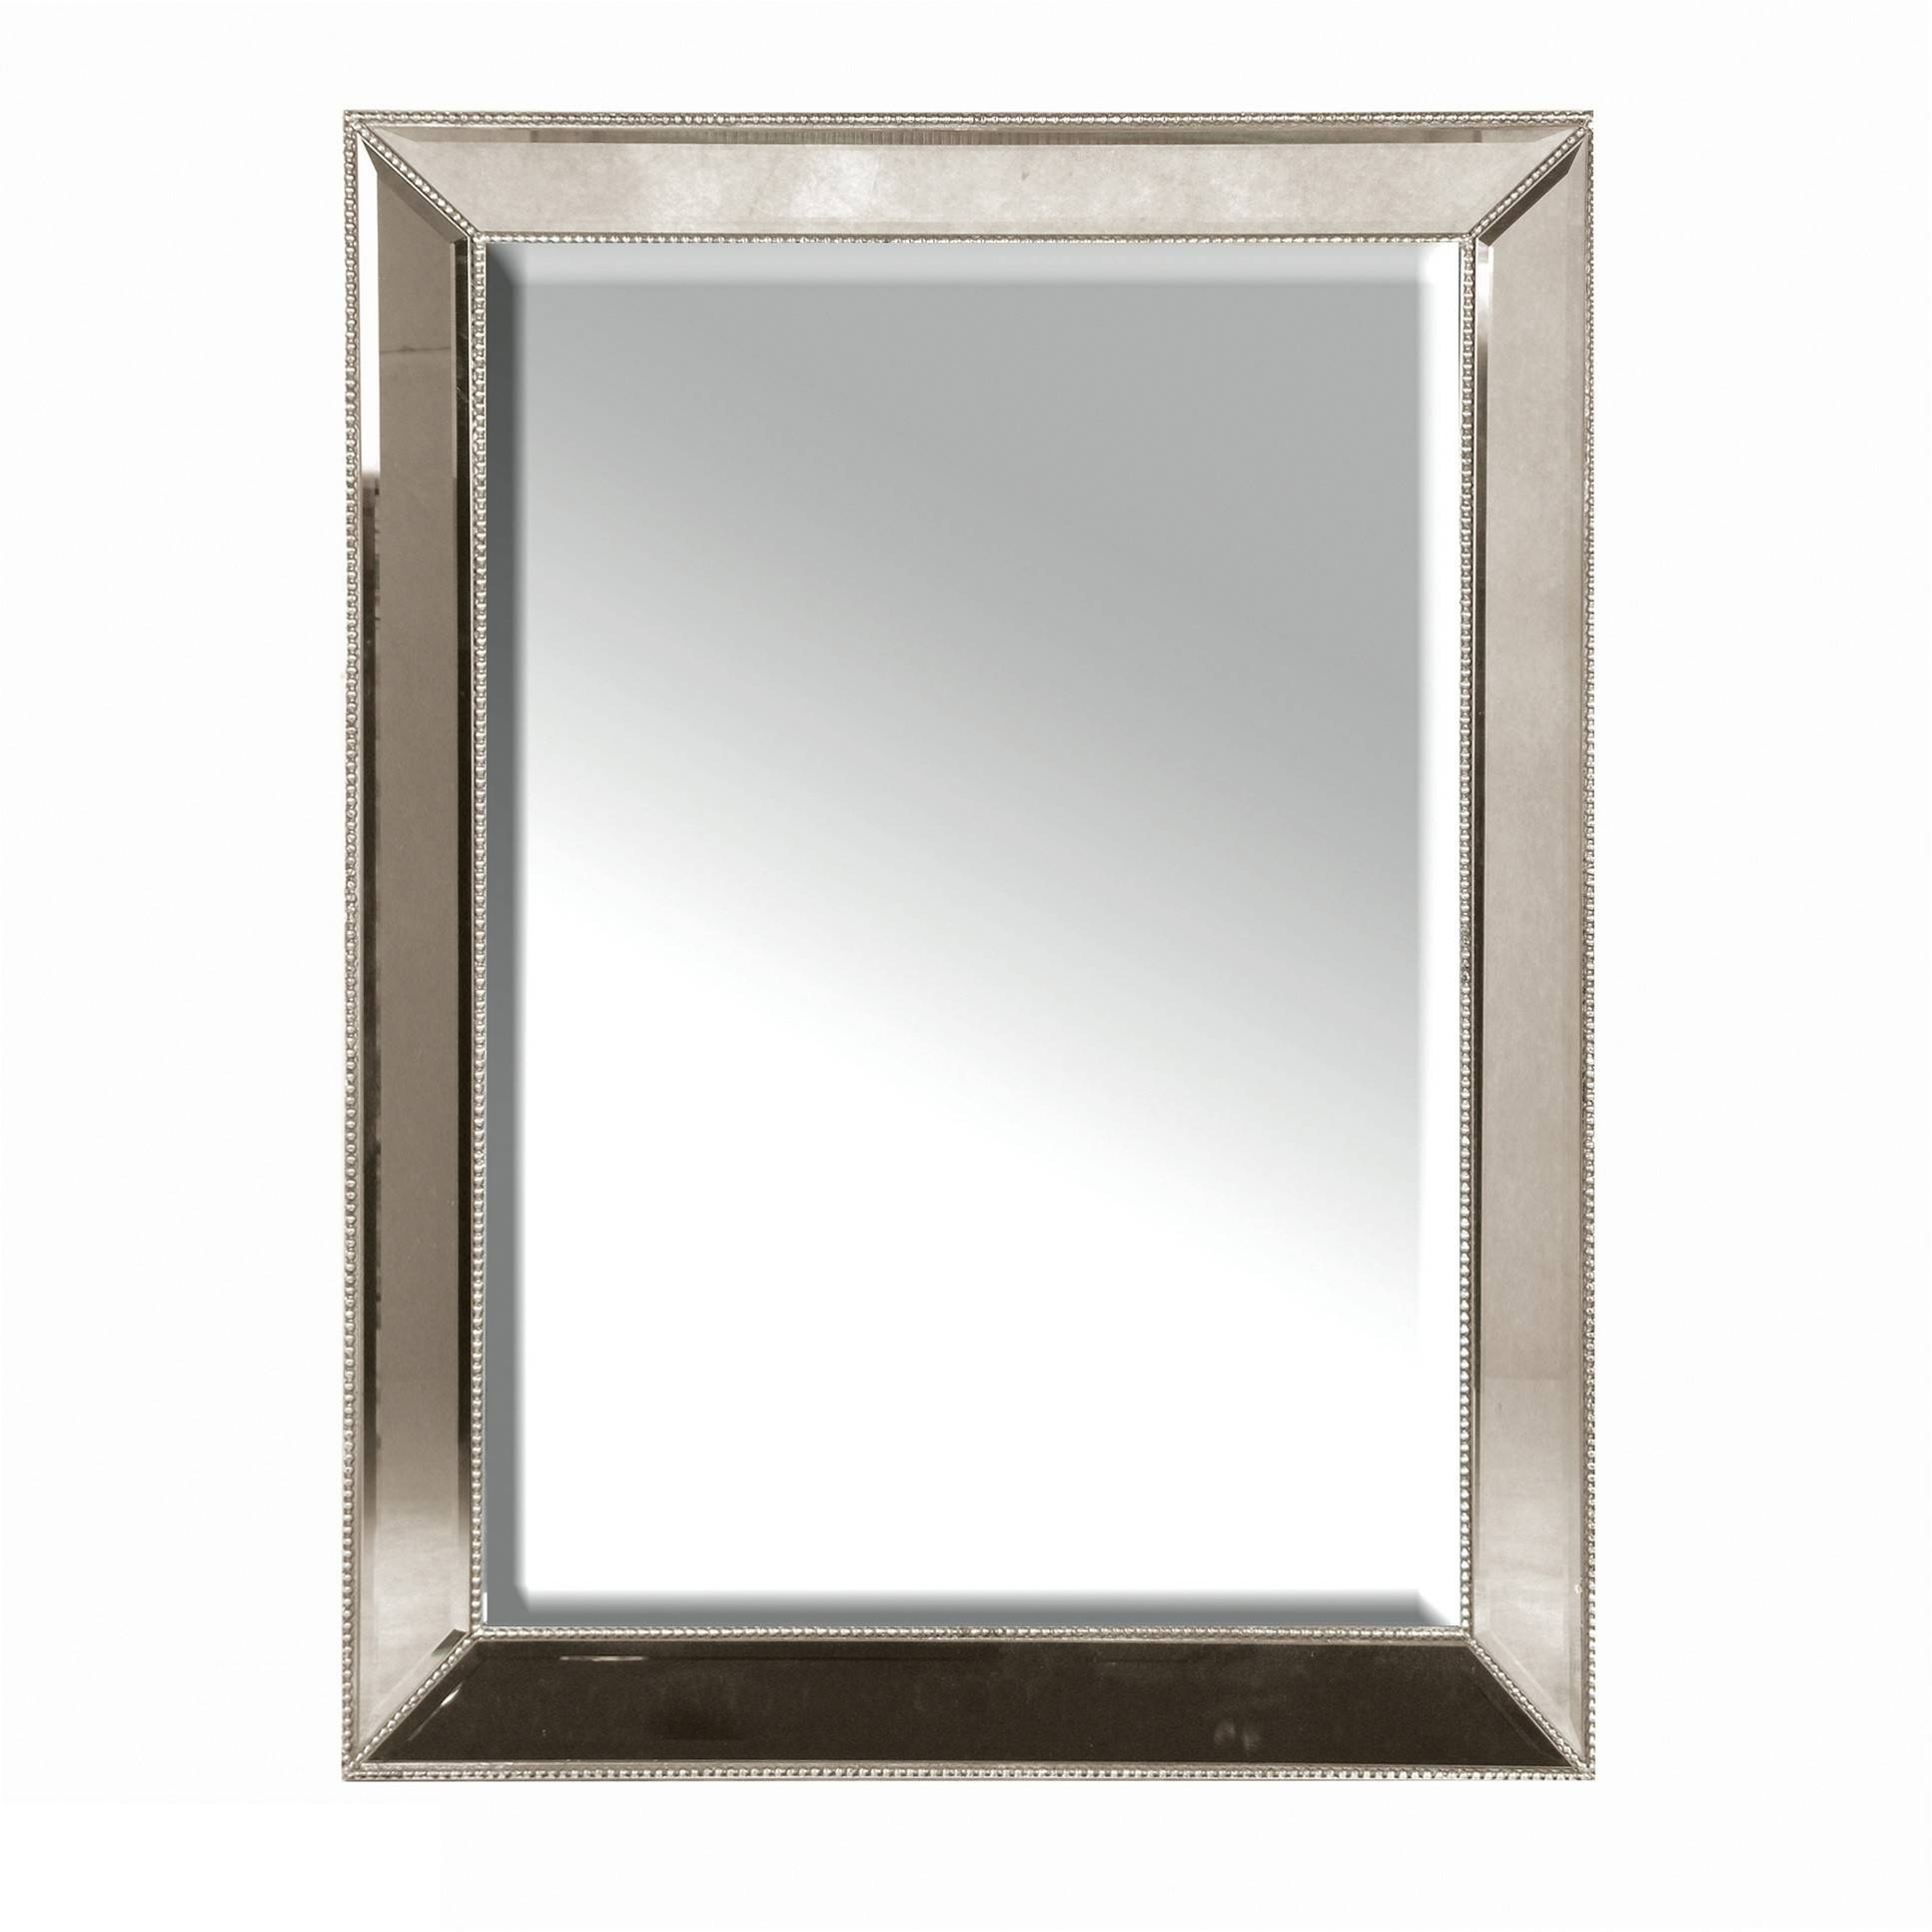 Venetian Mirror With Stud Frame in Venetian Beaded Mirrors (Image 14 of 15)